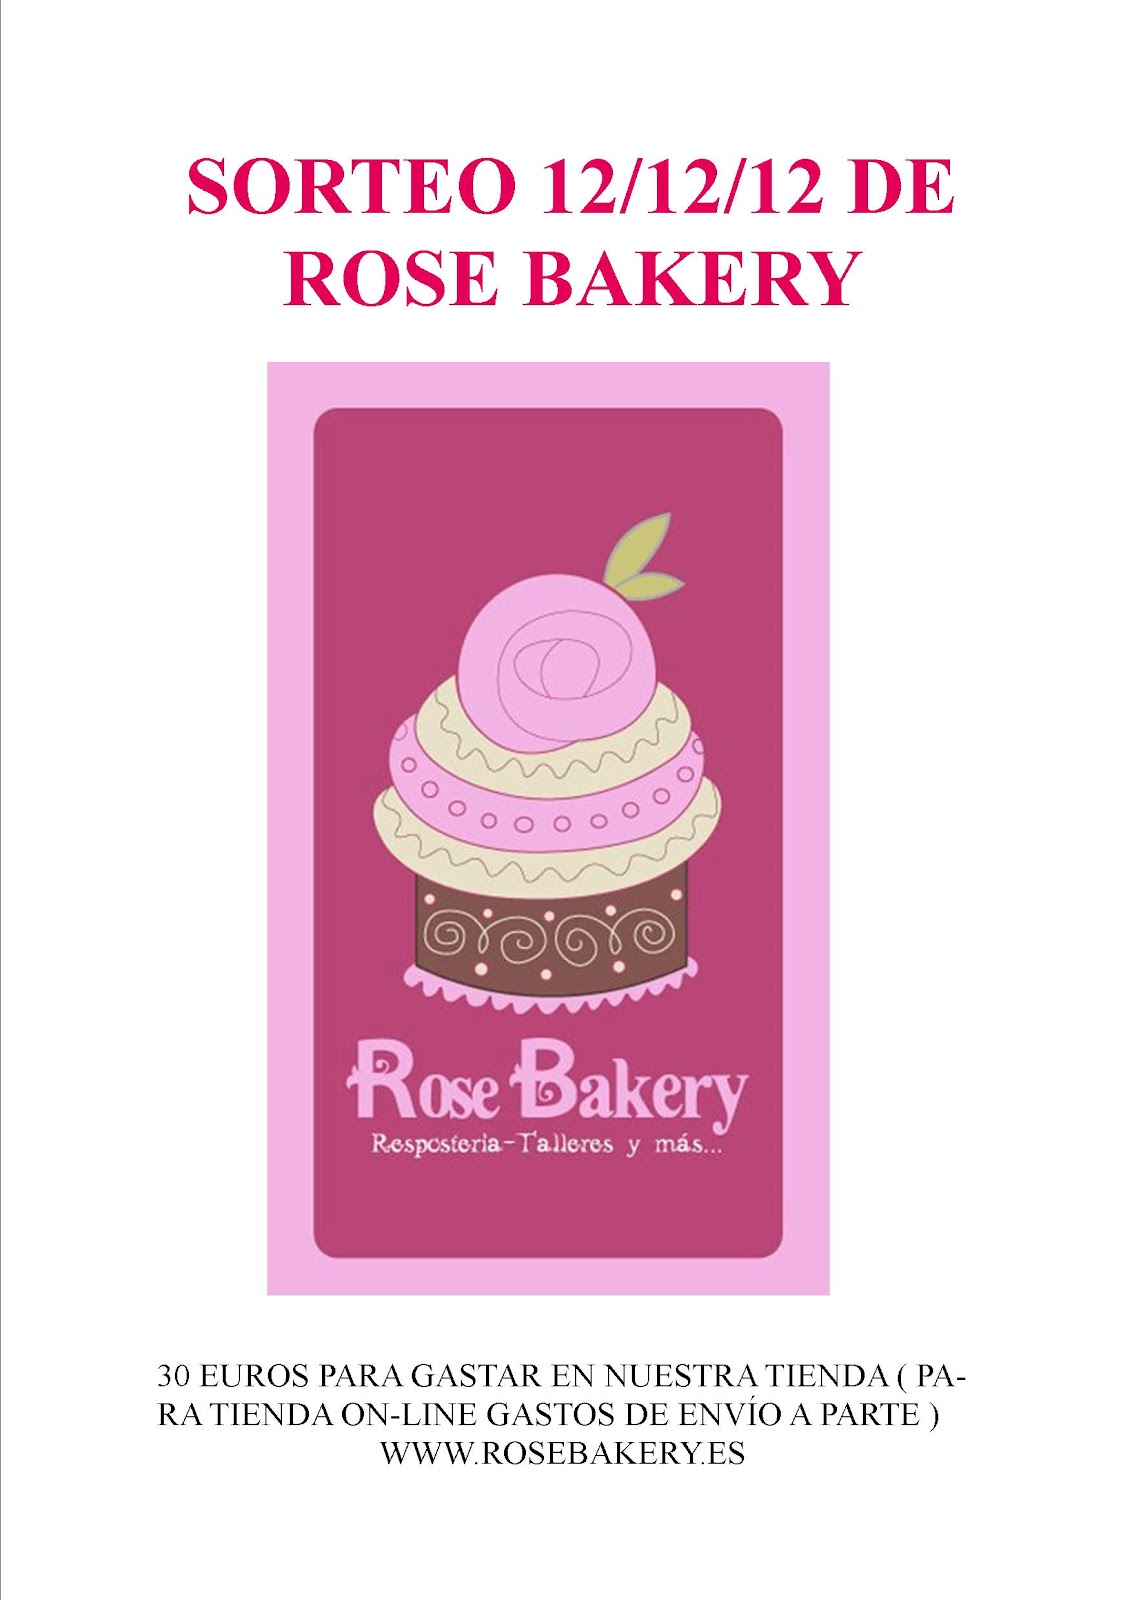 SORTEO EN ROSE BAKERY